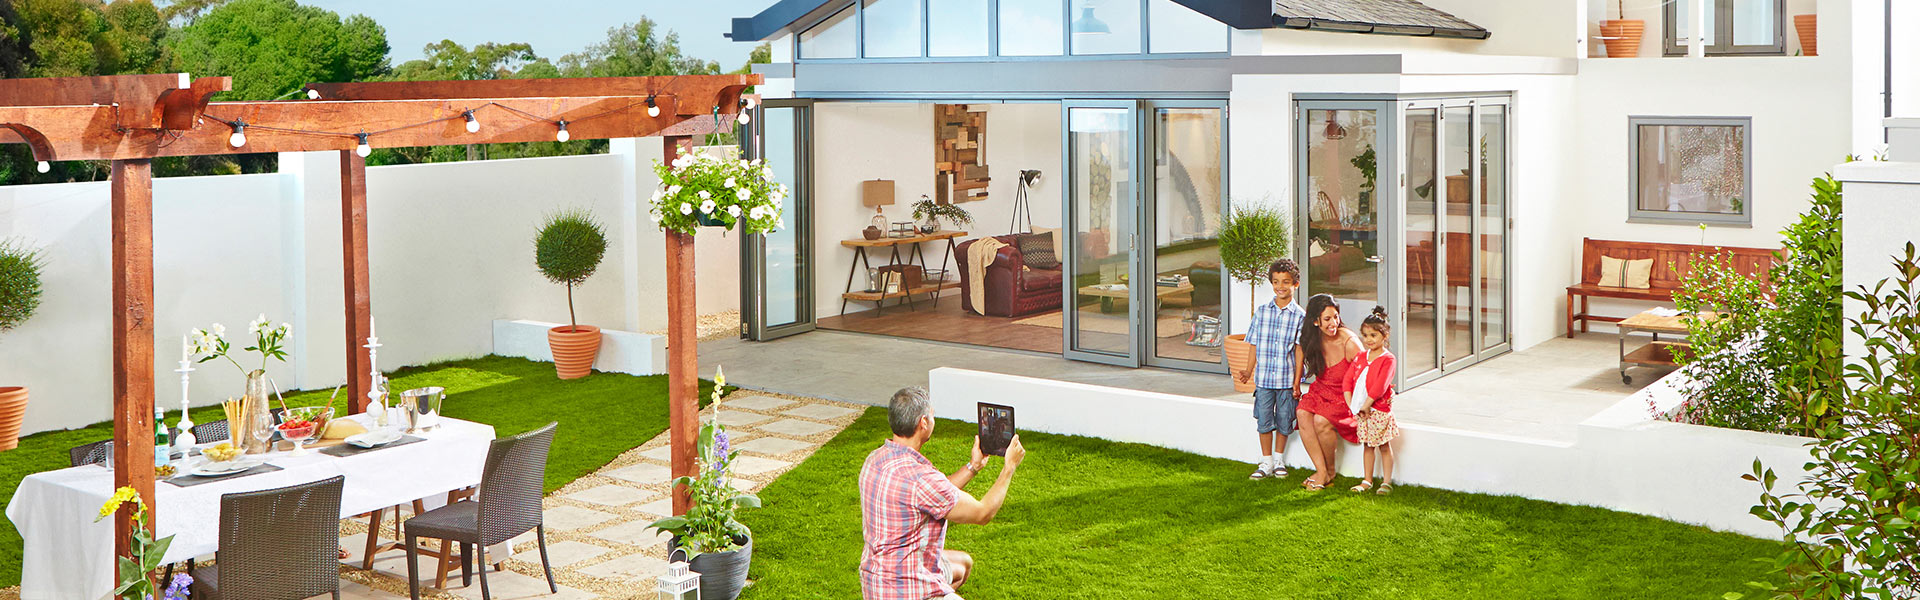 midland bi-folds folding door homepage